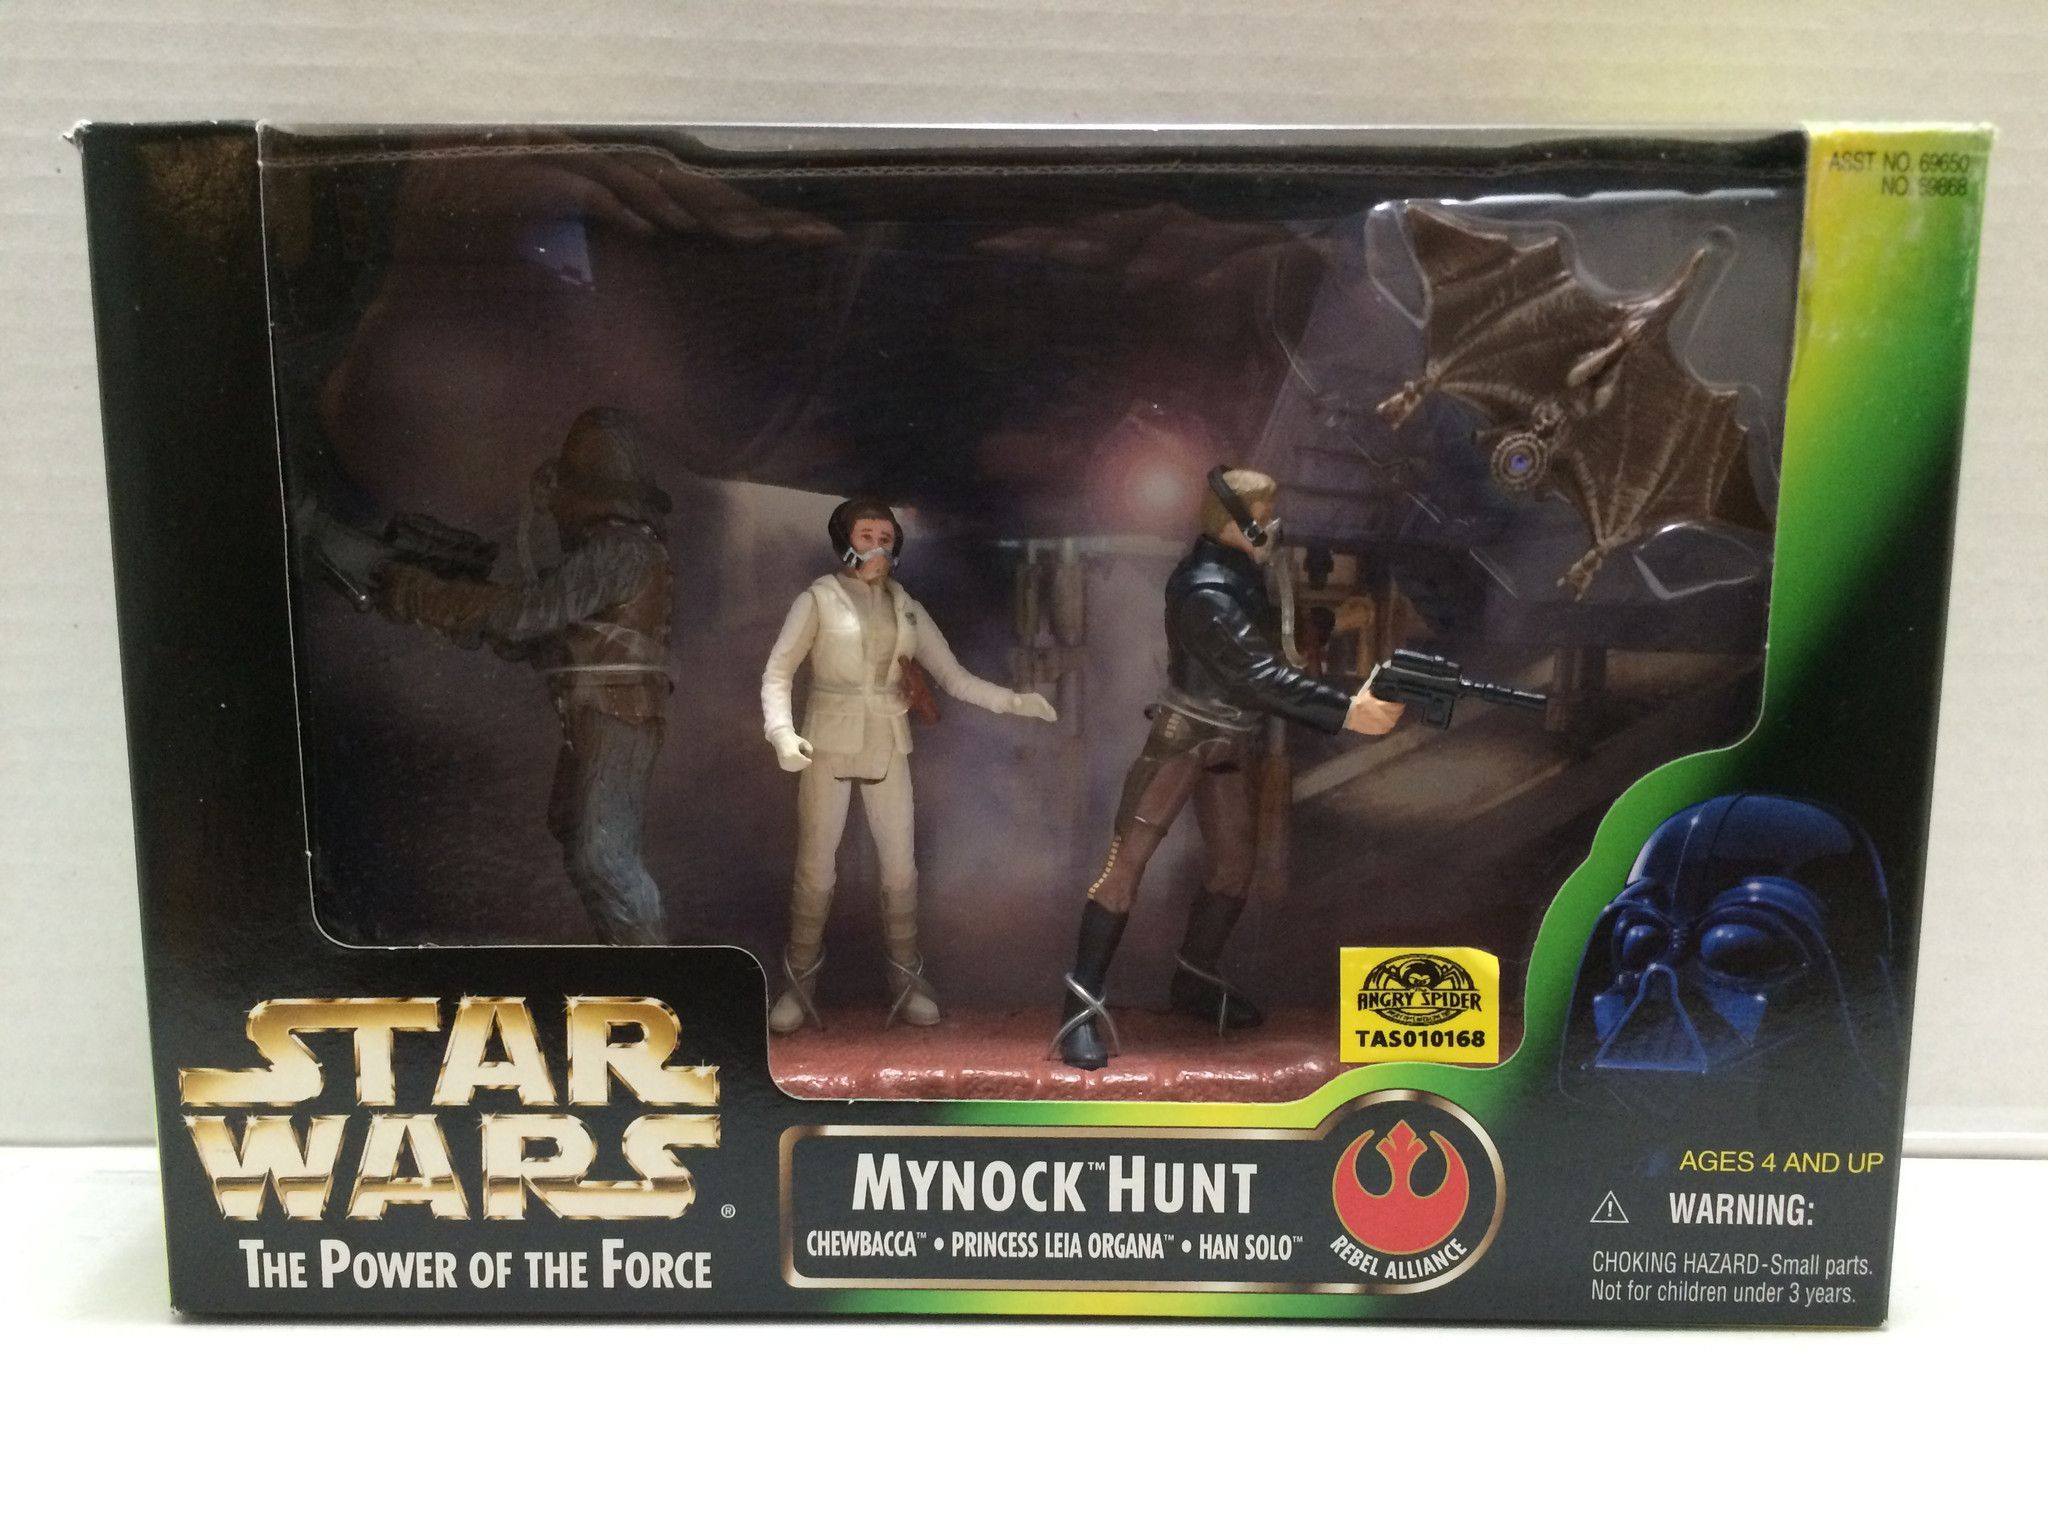 (TAS010168) - 1998 Kenner Hasbro Star Wars - Mynock Hunt Play Set